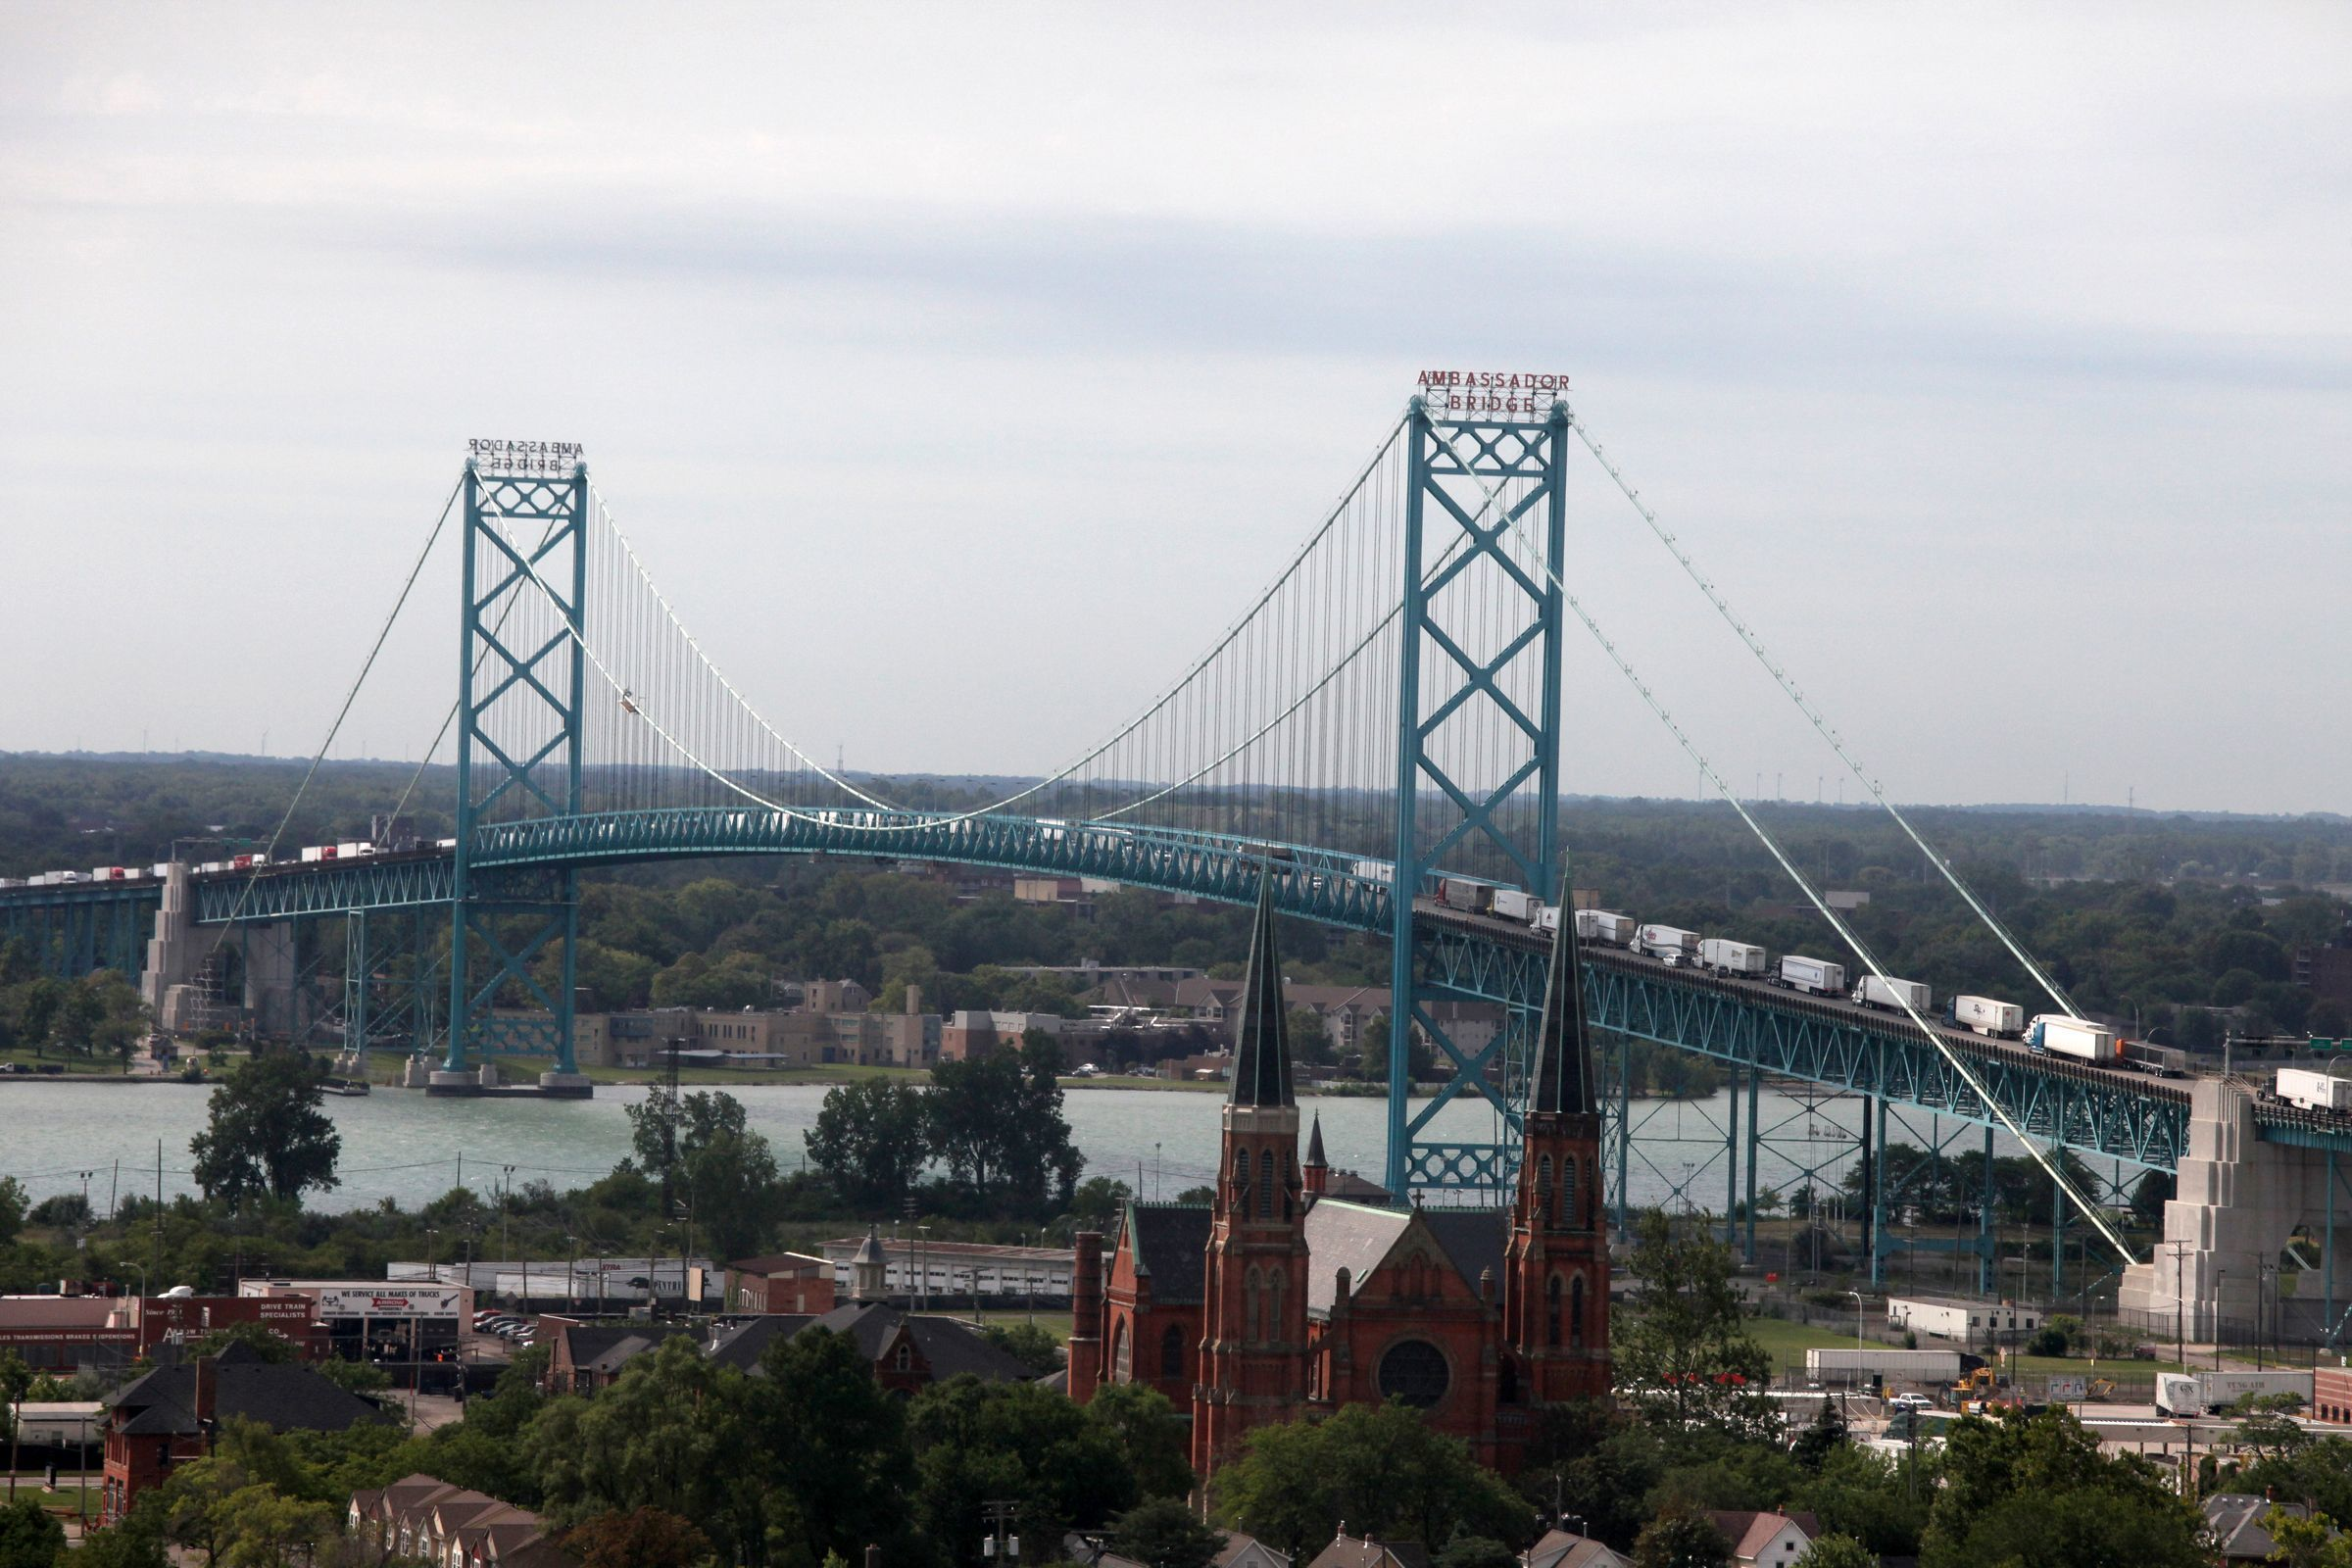 The Ambassador Bridge is one of the busiest border crossings in North America.